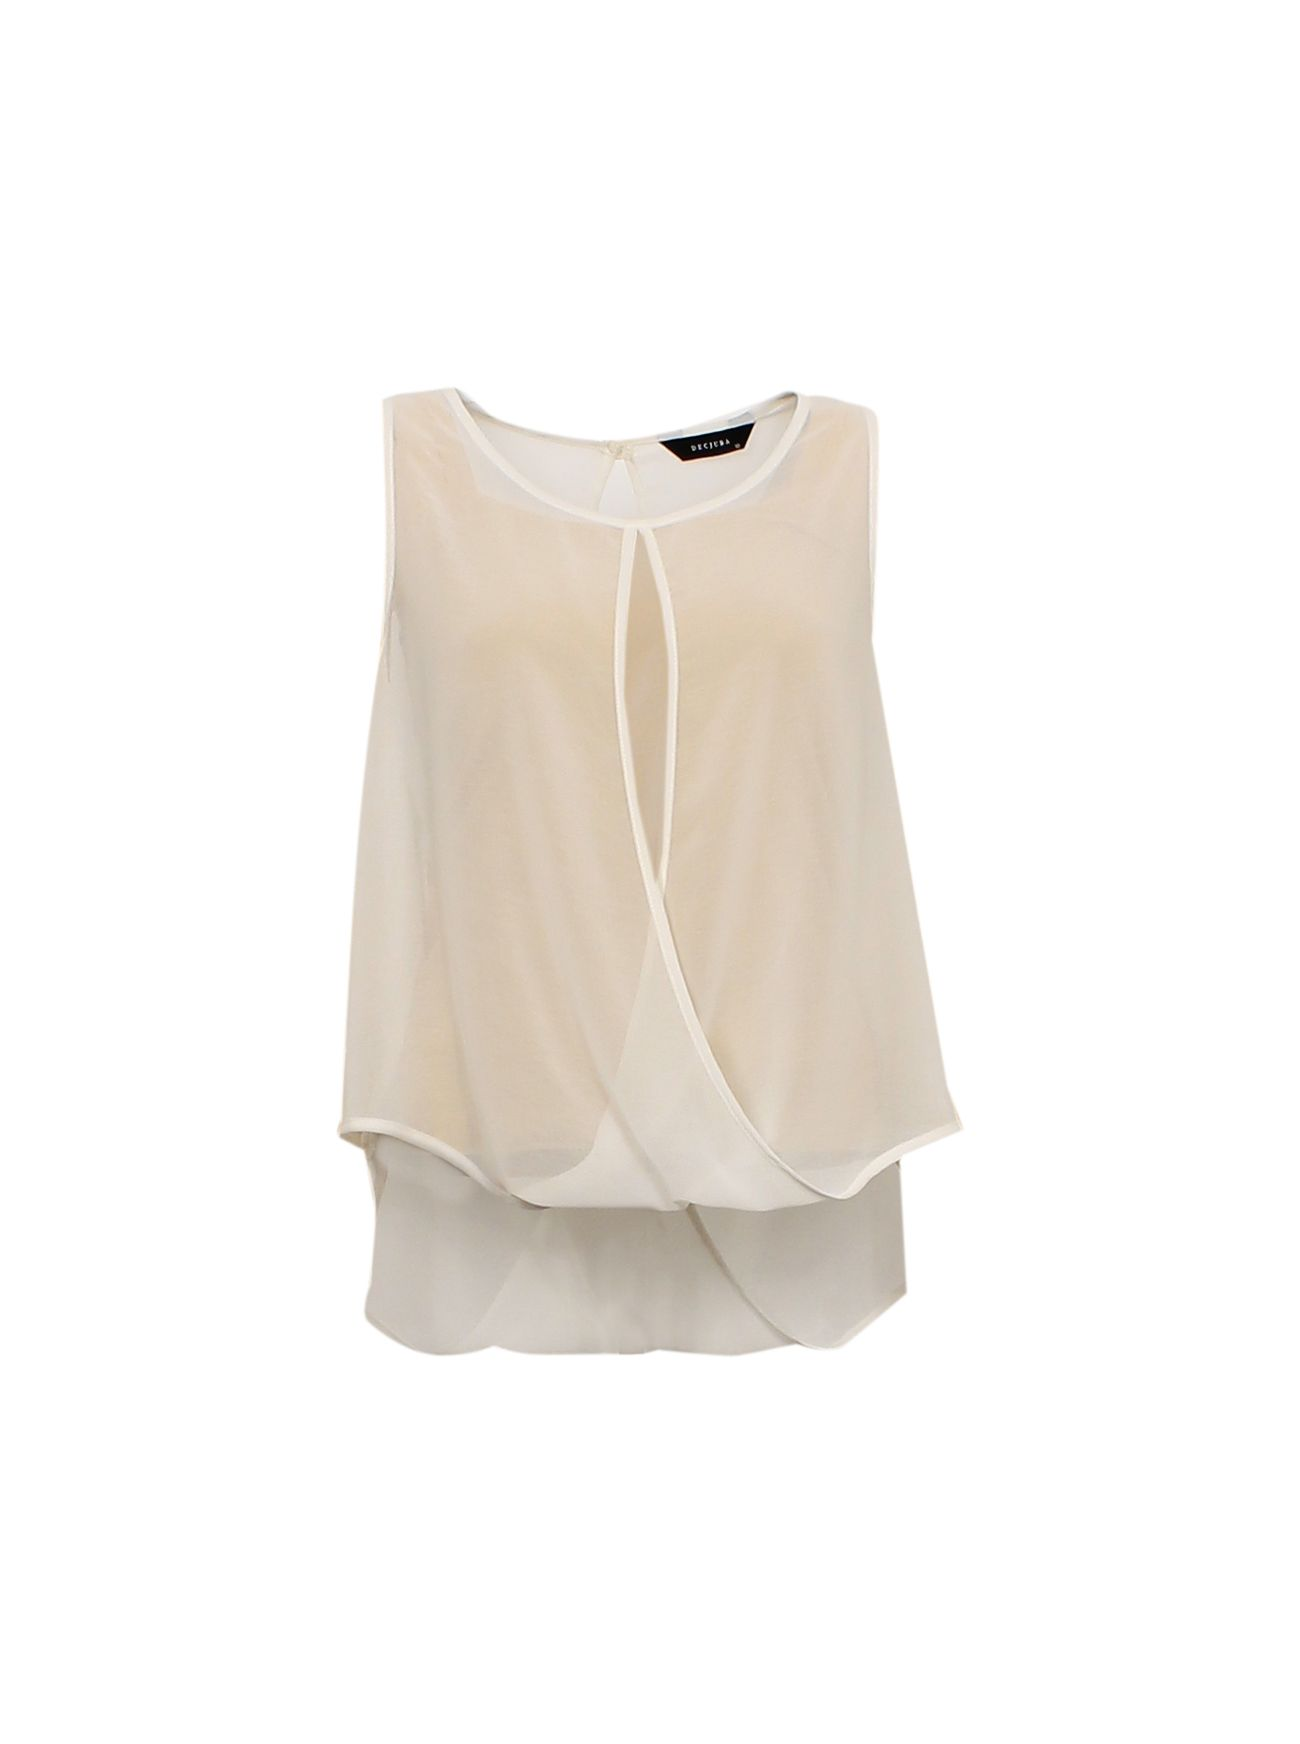 Decjuba draped in style shirt clothes pinterest clothes and